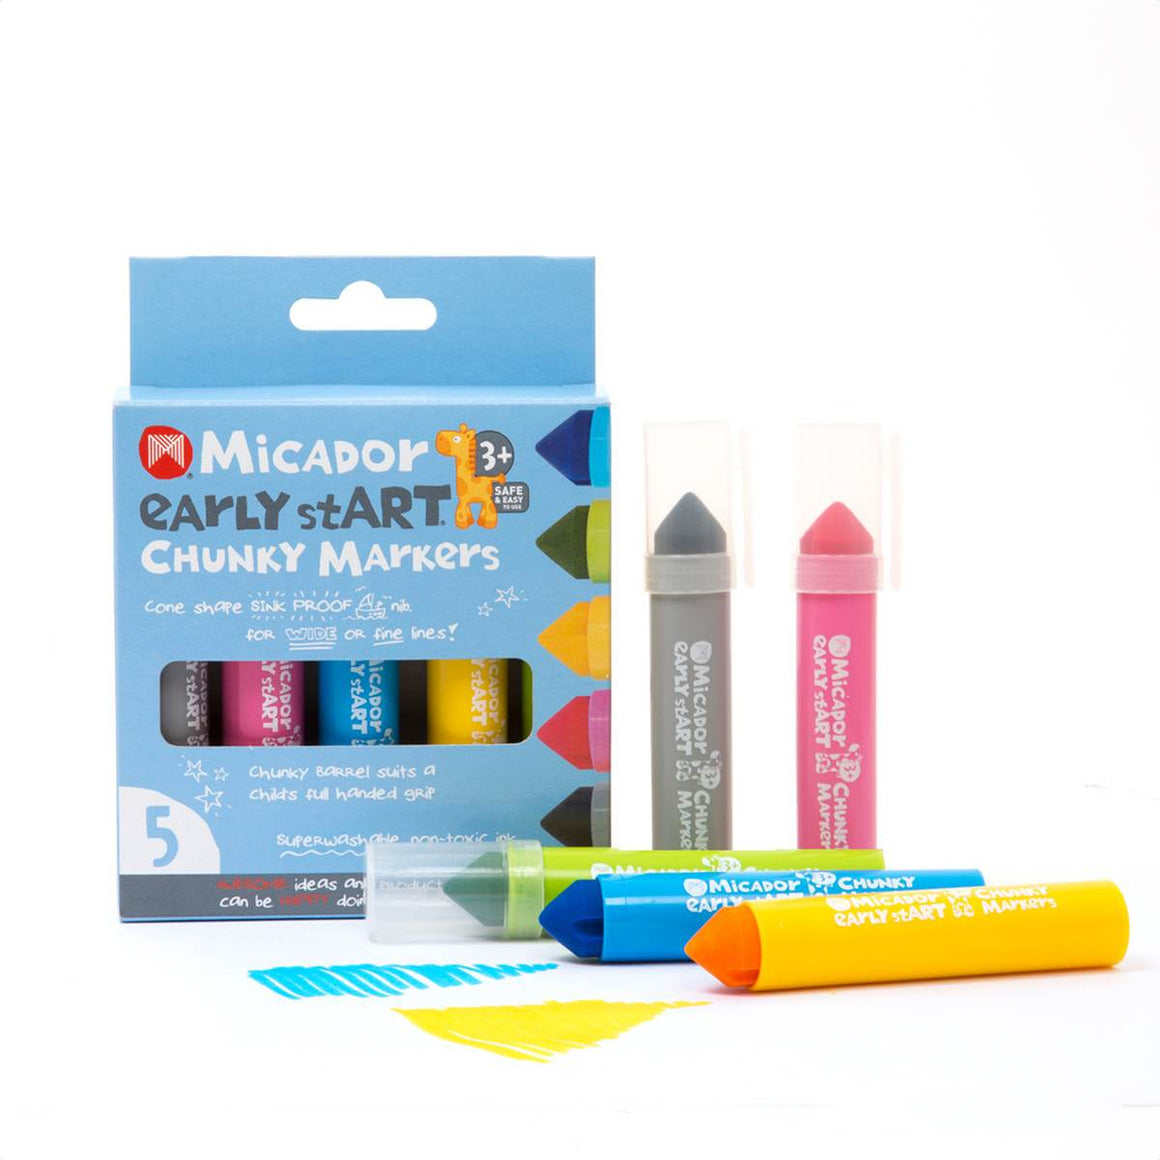 a boxed set of 5 chunky markers for young children in grey, pink, blue, yellow and green.